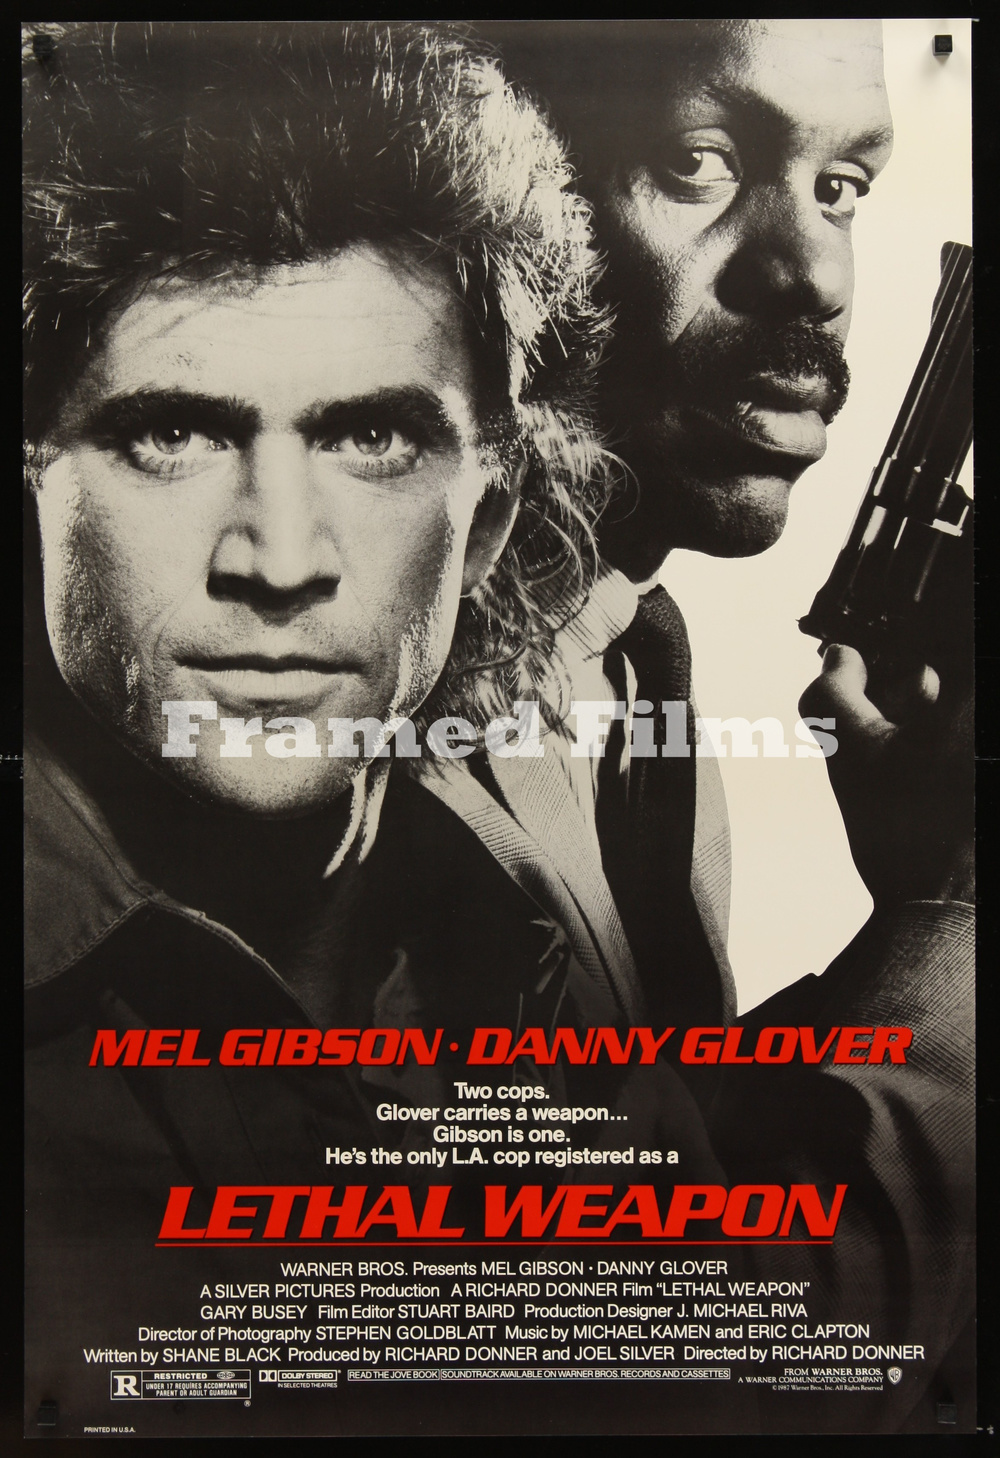 lethal_weapon_NZ03073_L.jpg